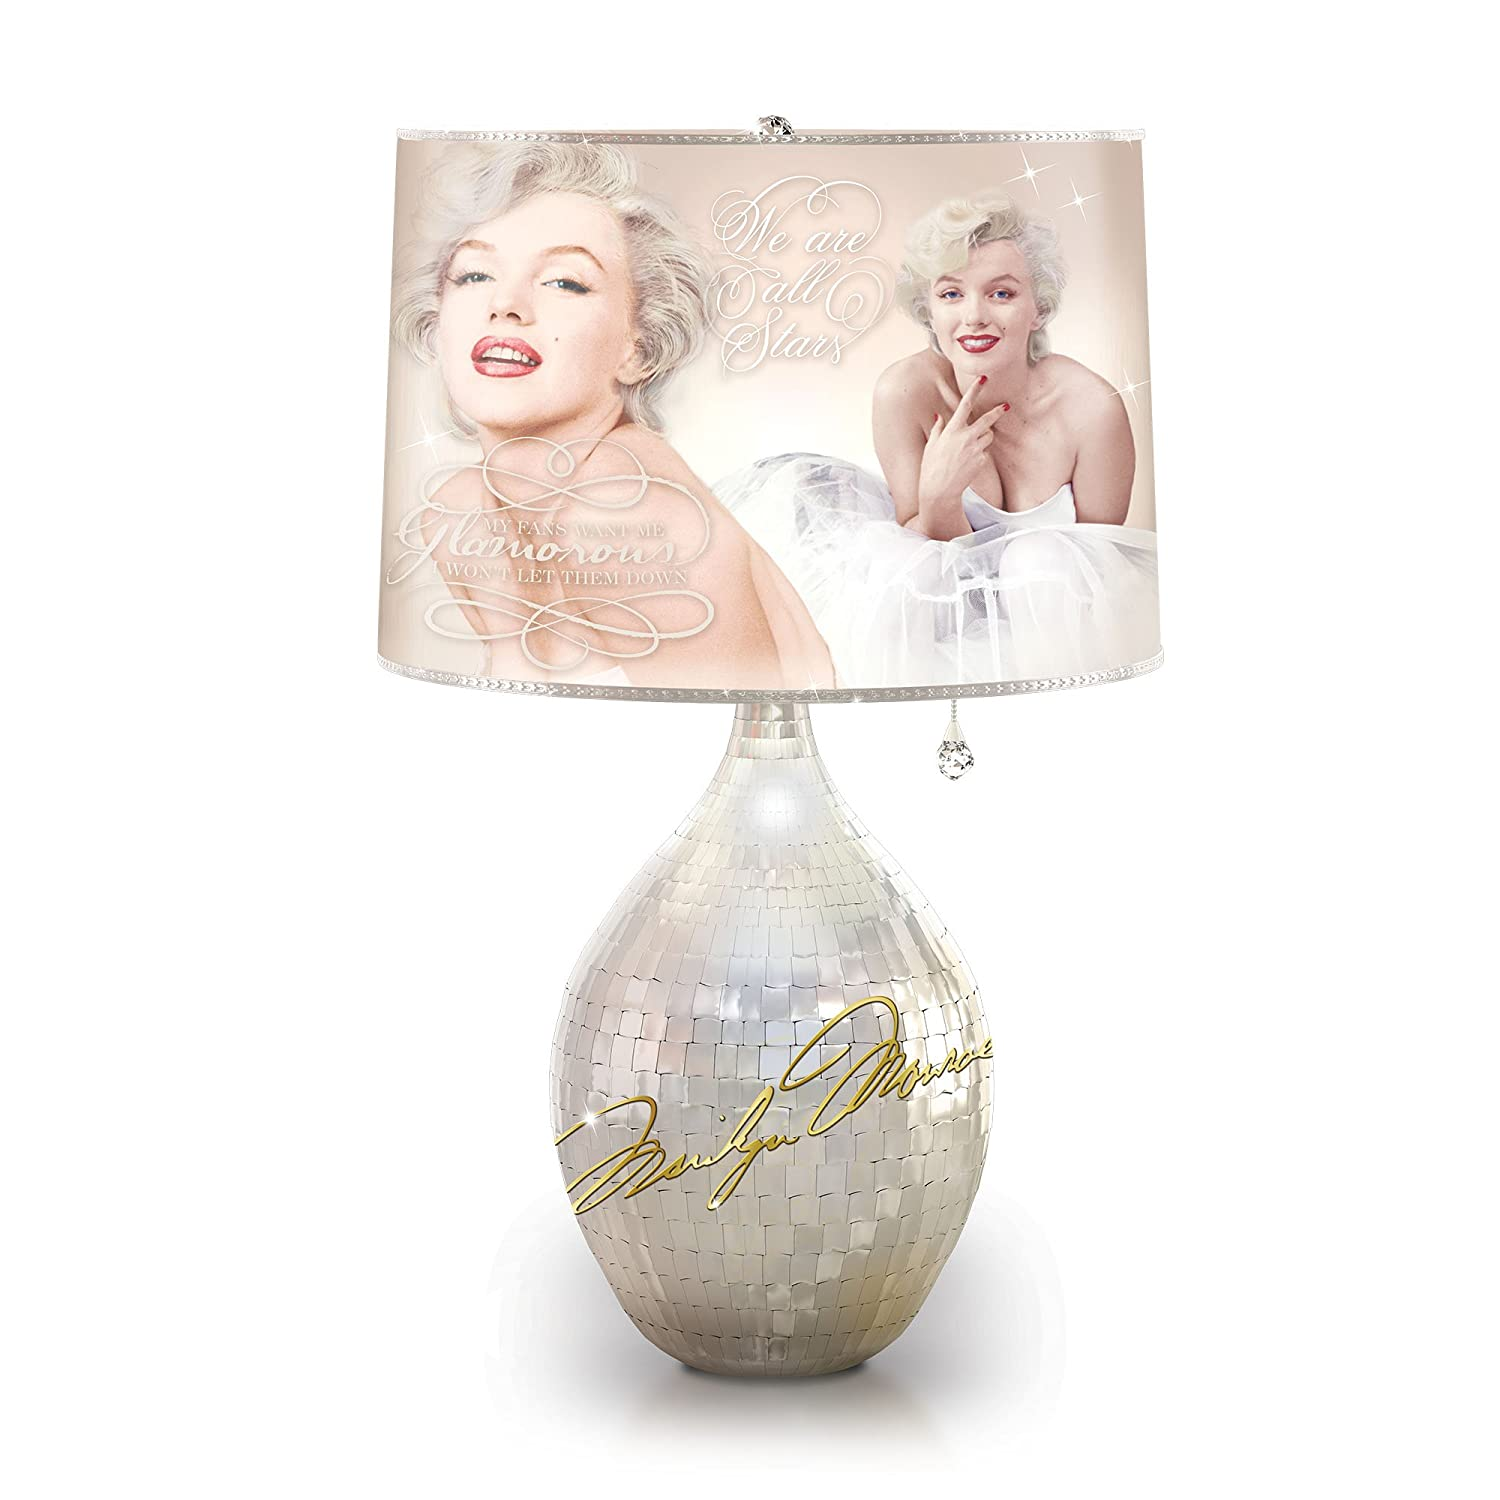 Citaten Van Marilyn Monroe : Officially licensed marilyn monroetm legendary glamour lamp with